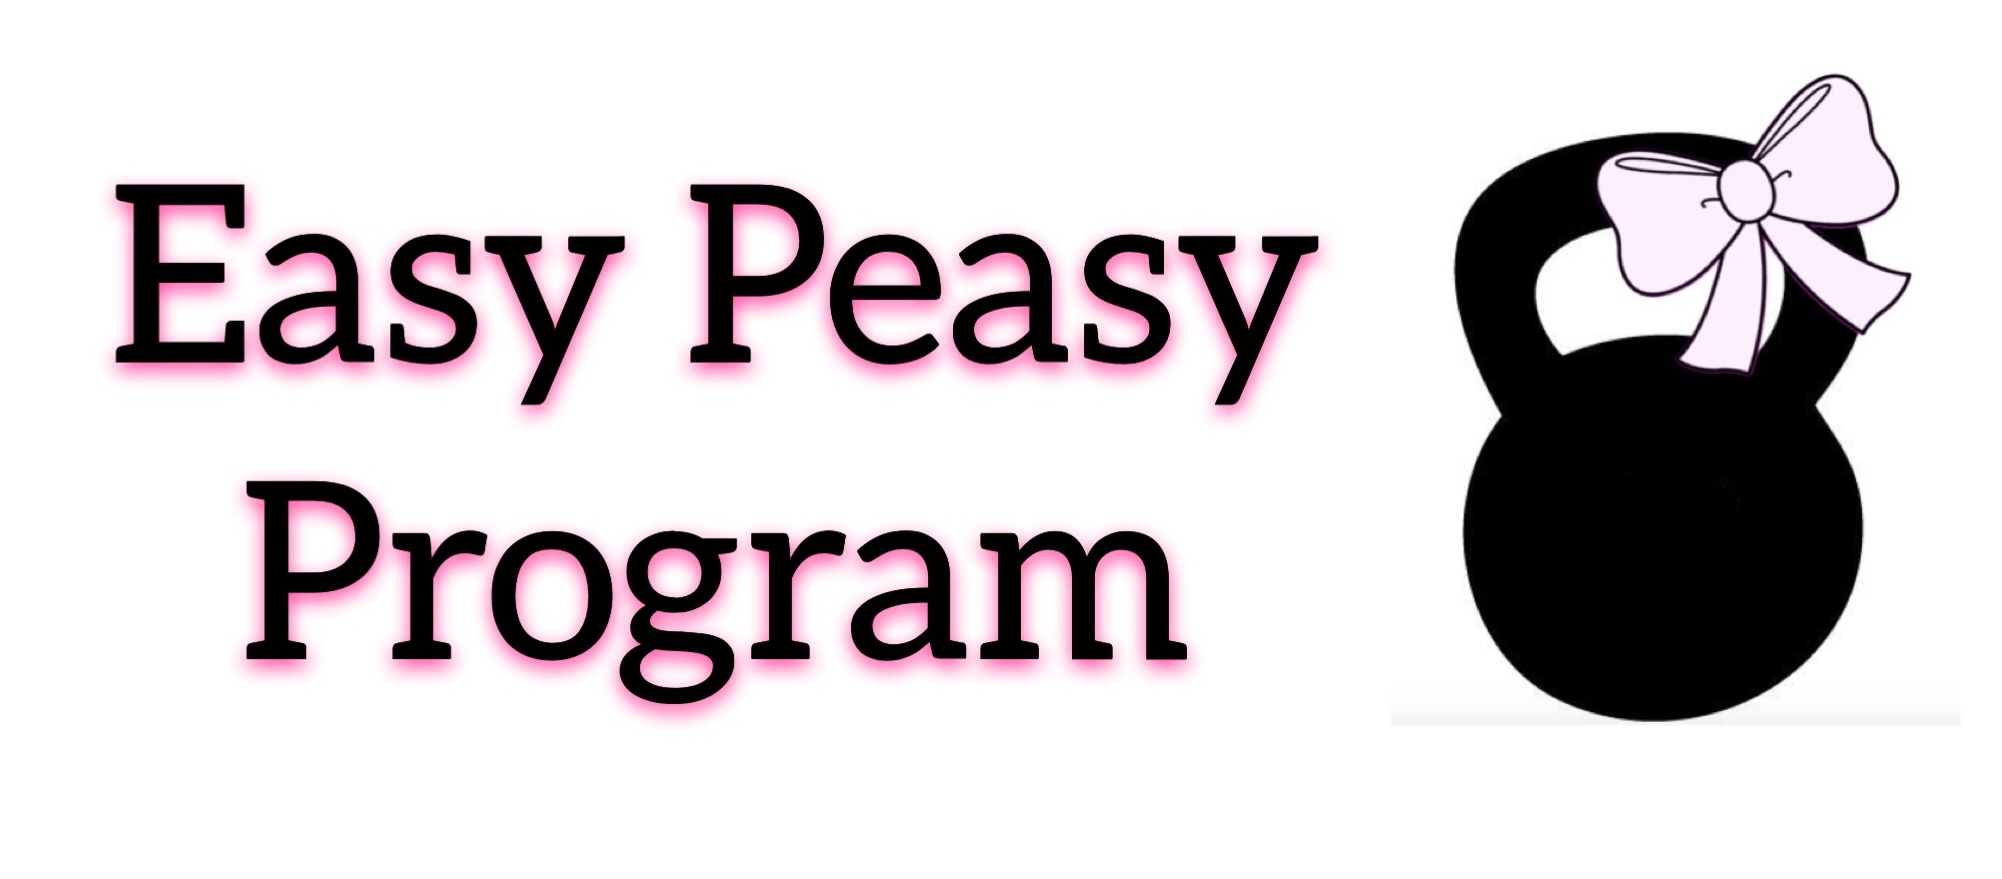 Thank you! - Thank you for purchasing the Easy Peasy Program! I'm honoured that you're choosing to spend the next four weeks working on your kettlebell skills to get stronger, more mobile and increase your endurance.Please feel free to reach out with any questions at all.Click below for the downloadable PDF.